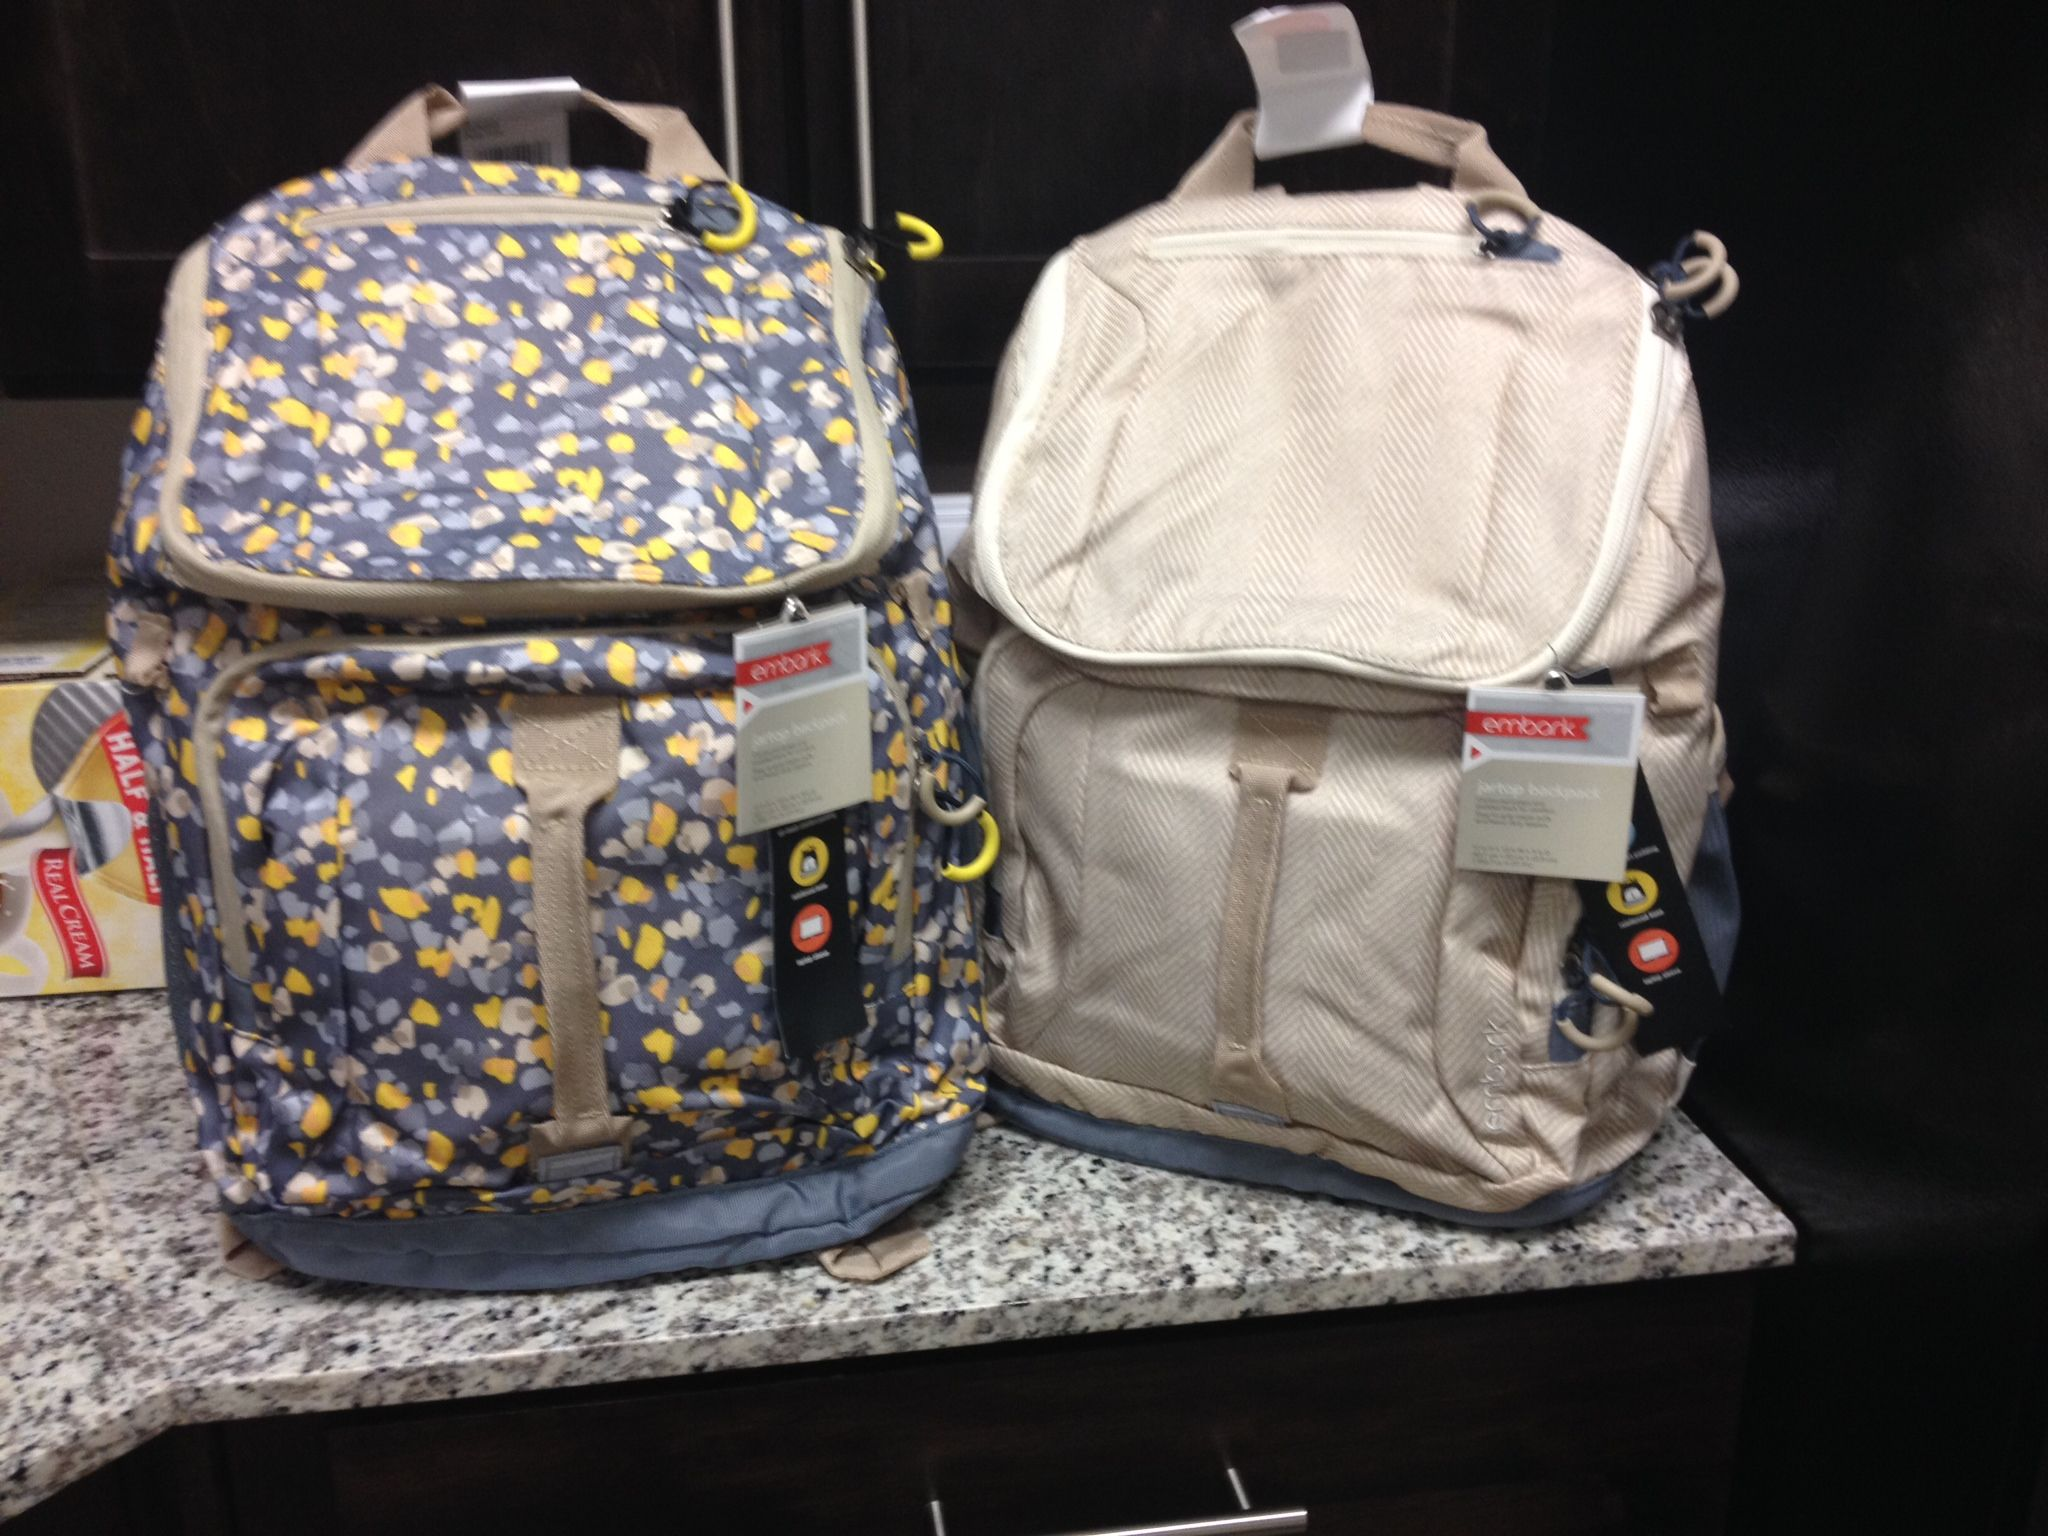 TIME IS RUNNING OUT To enter our Back-To-School Giveaway! Stop by the 98 Clubhouse between the hours of 9a - 6p to enter your name for our #BackToSchool Backpack Giveaway! Prize filled backpacks will go to the following:   1 Boy and 1 Girl for K-6th 1 Boy and 1 Girl for 7-8th 1 Boy and 1 Girl for 9-12th   You'll have until Friday, August 8th to enter your name and we'll announce winners Monday, August 11th!